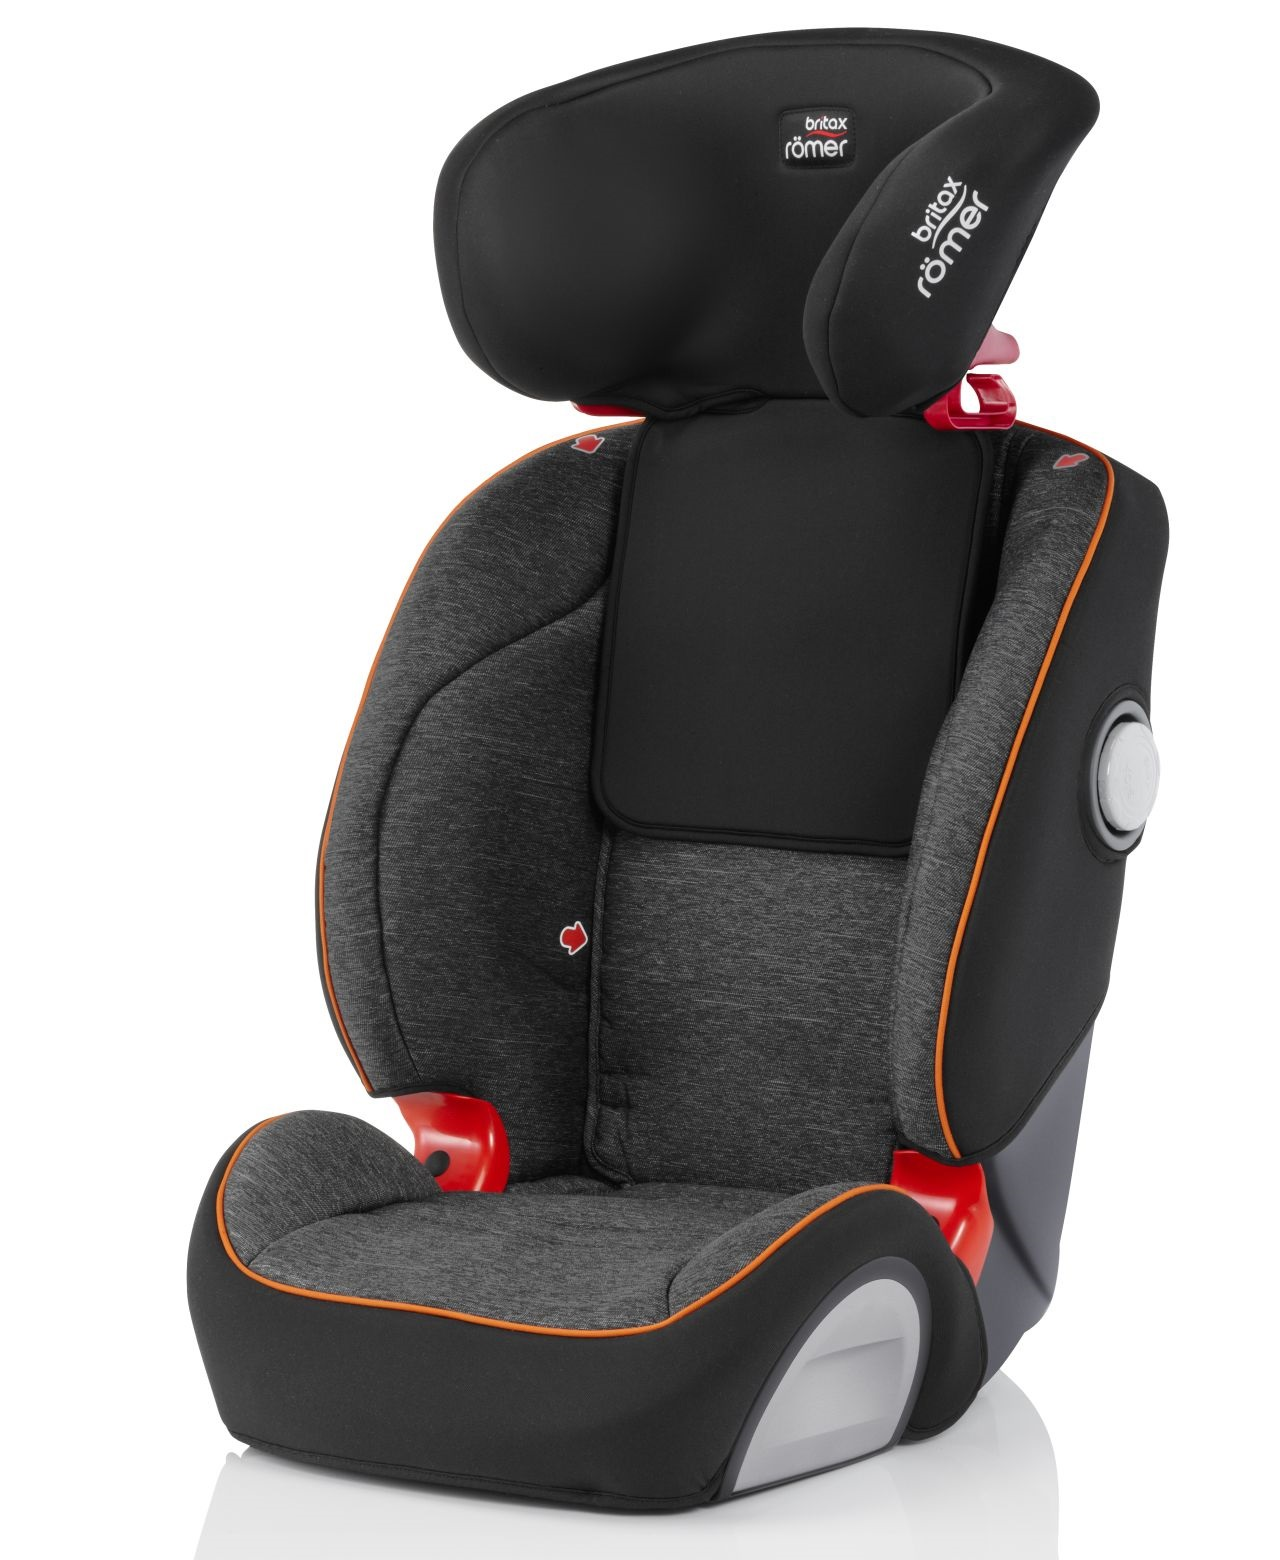 britax r mer evolva 1 2 3 sl sict isofix 2019 black marble buy at kidsroom car seats. Black Bedroom Furniture Sets. Home Design Ideas